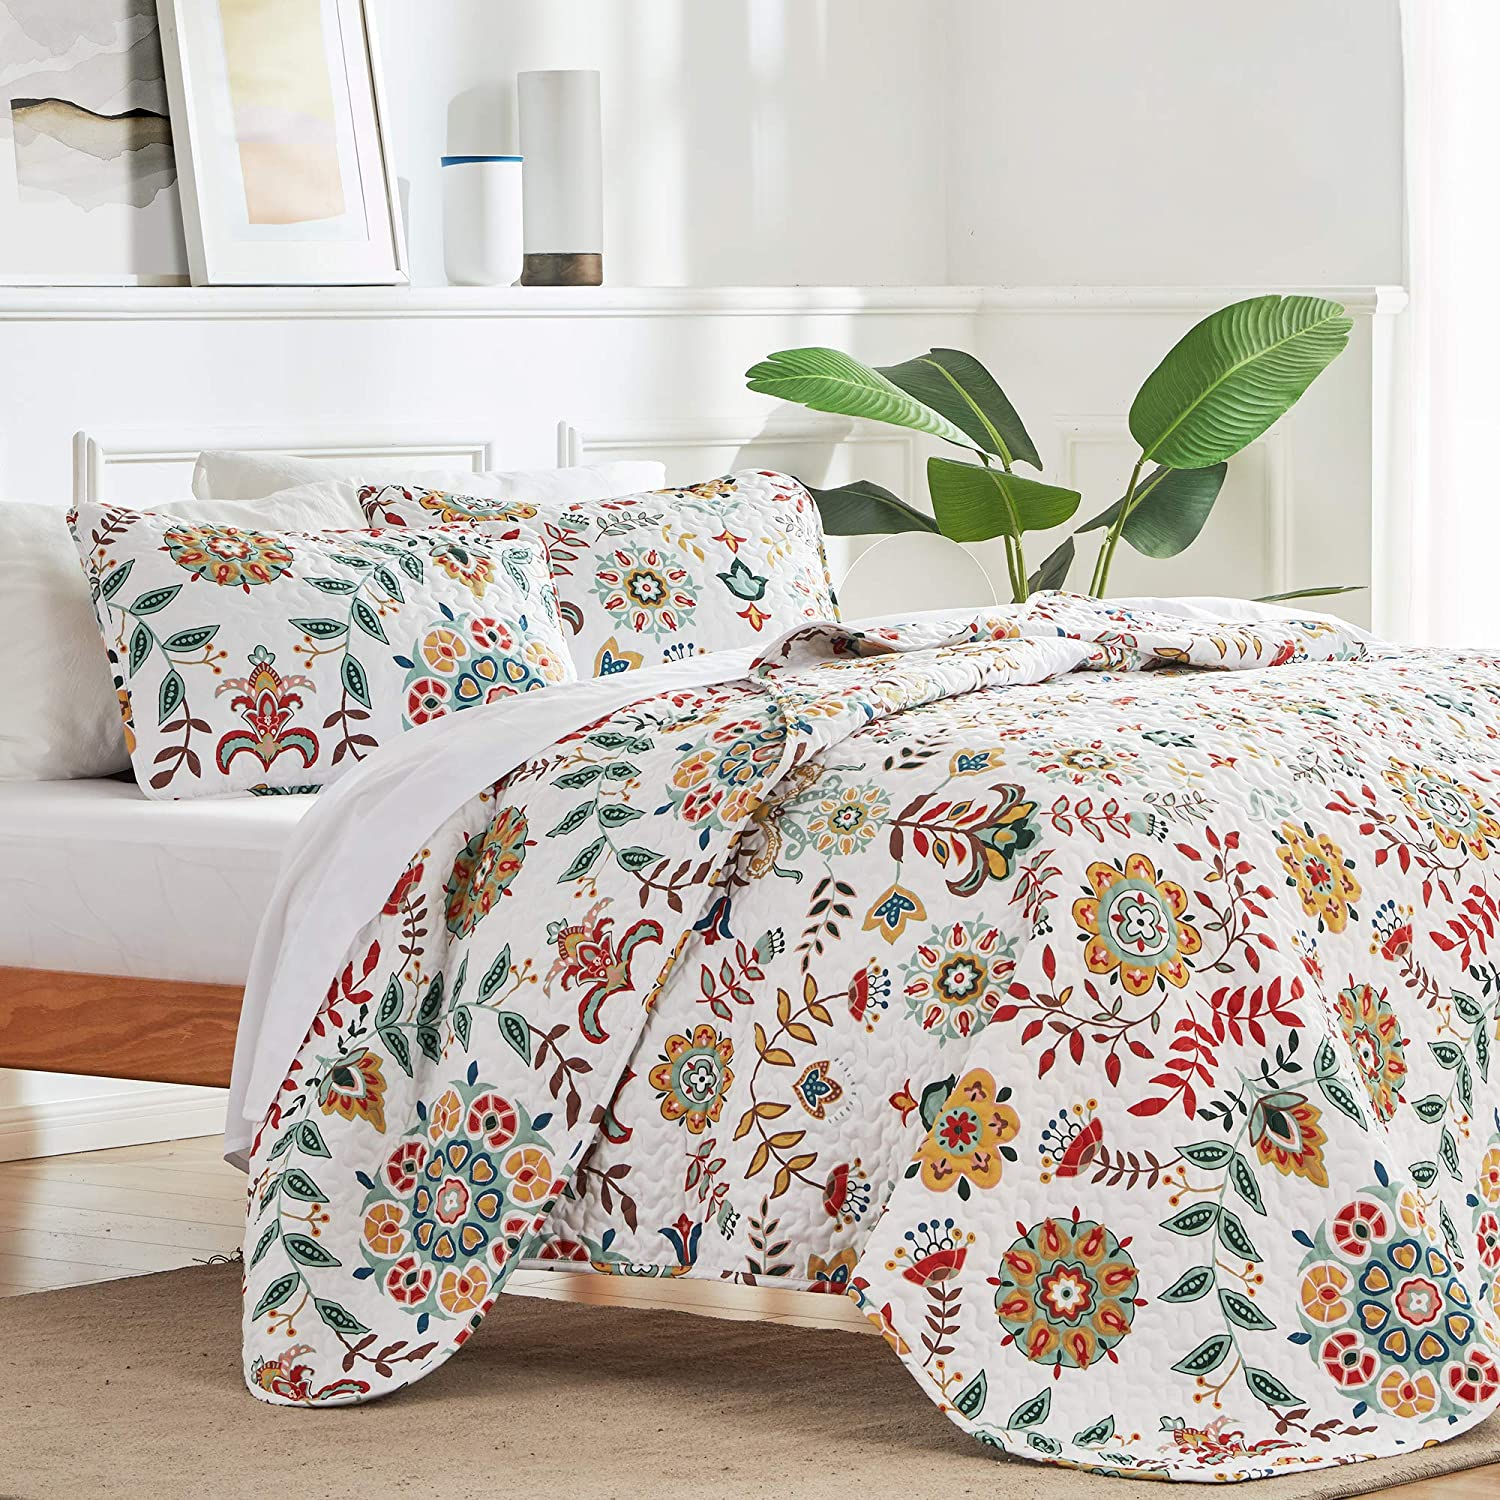 Details about  /Retro Quilted Coverlet /& Pillow Shams Set Jazz Band in New York Print